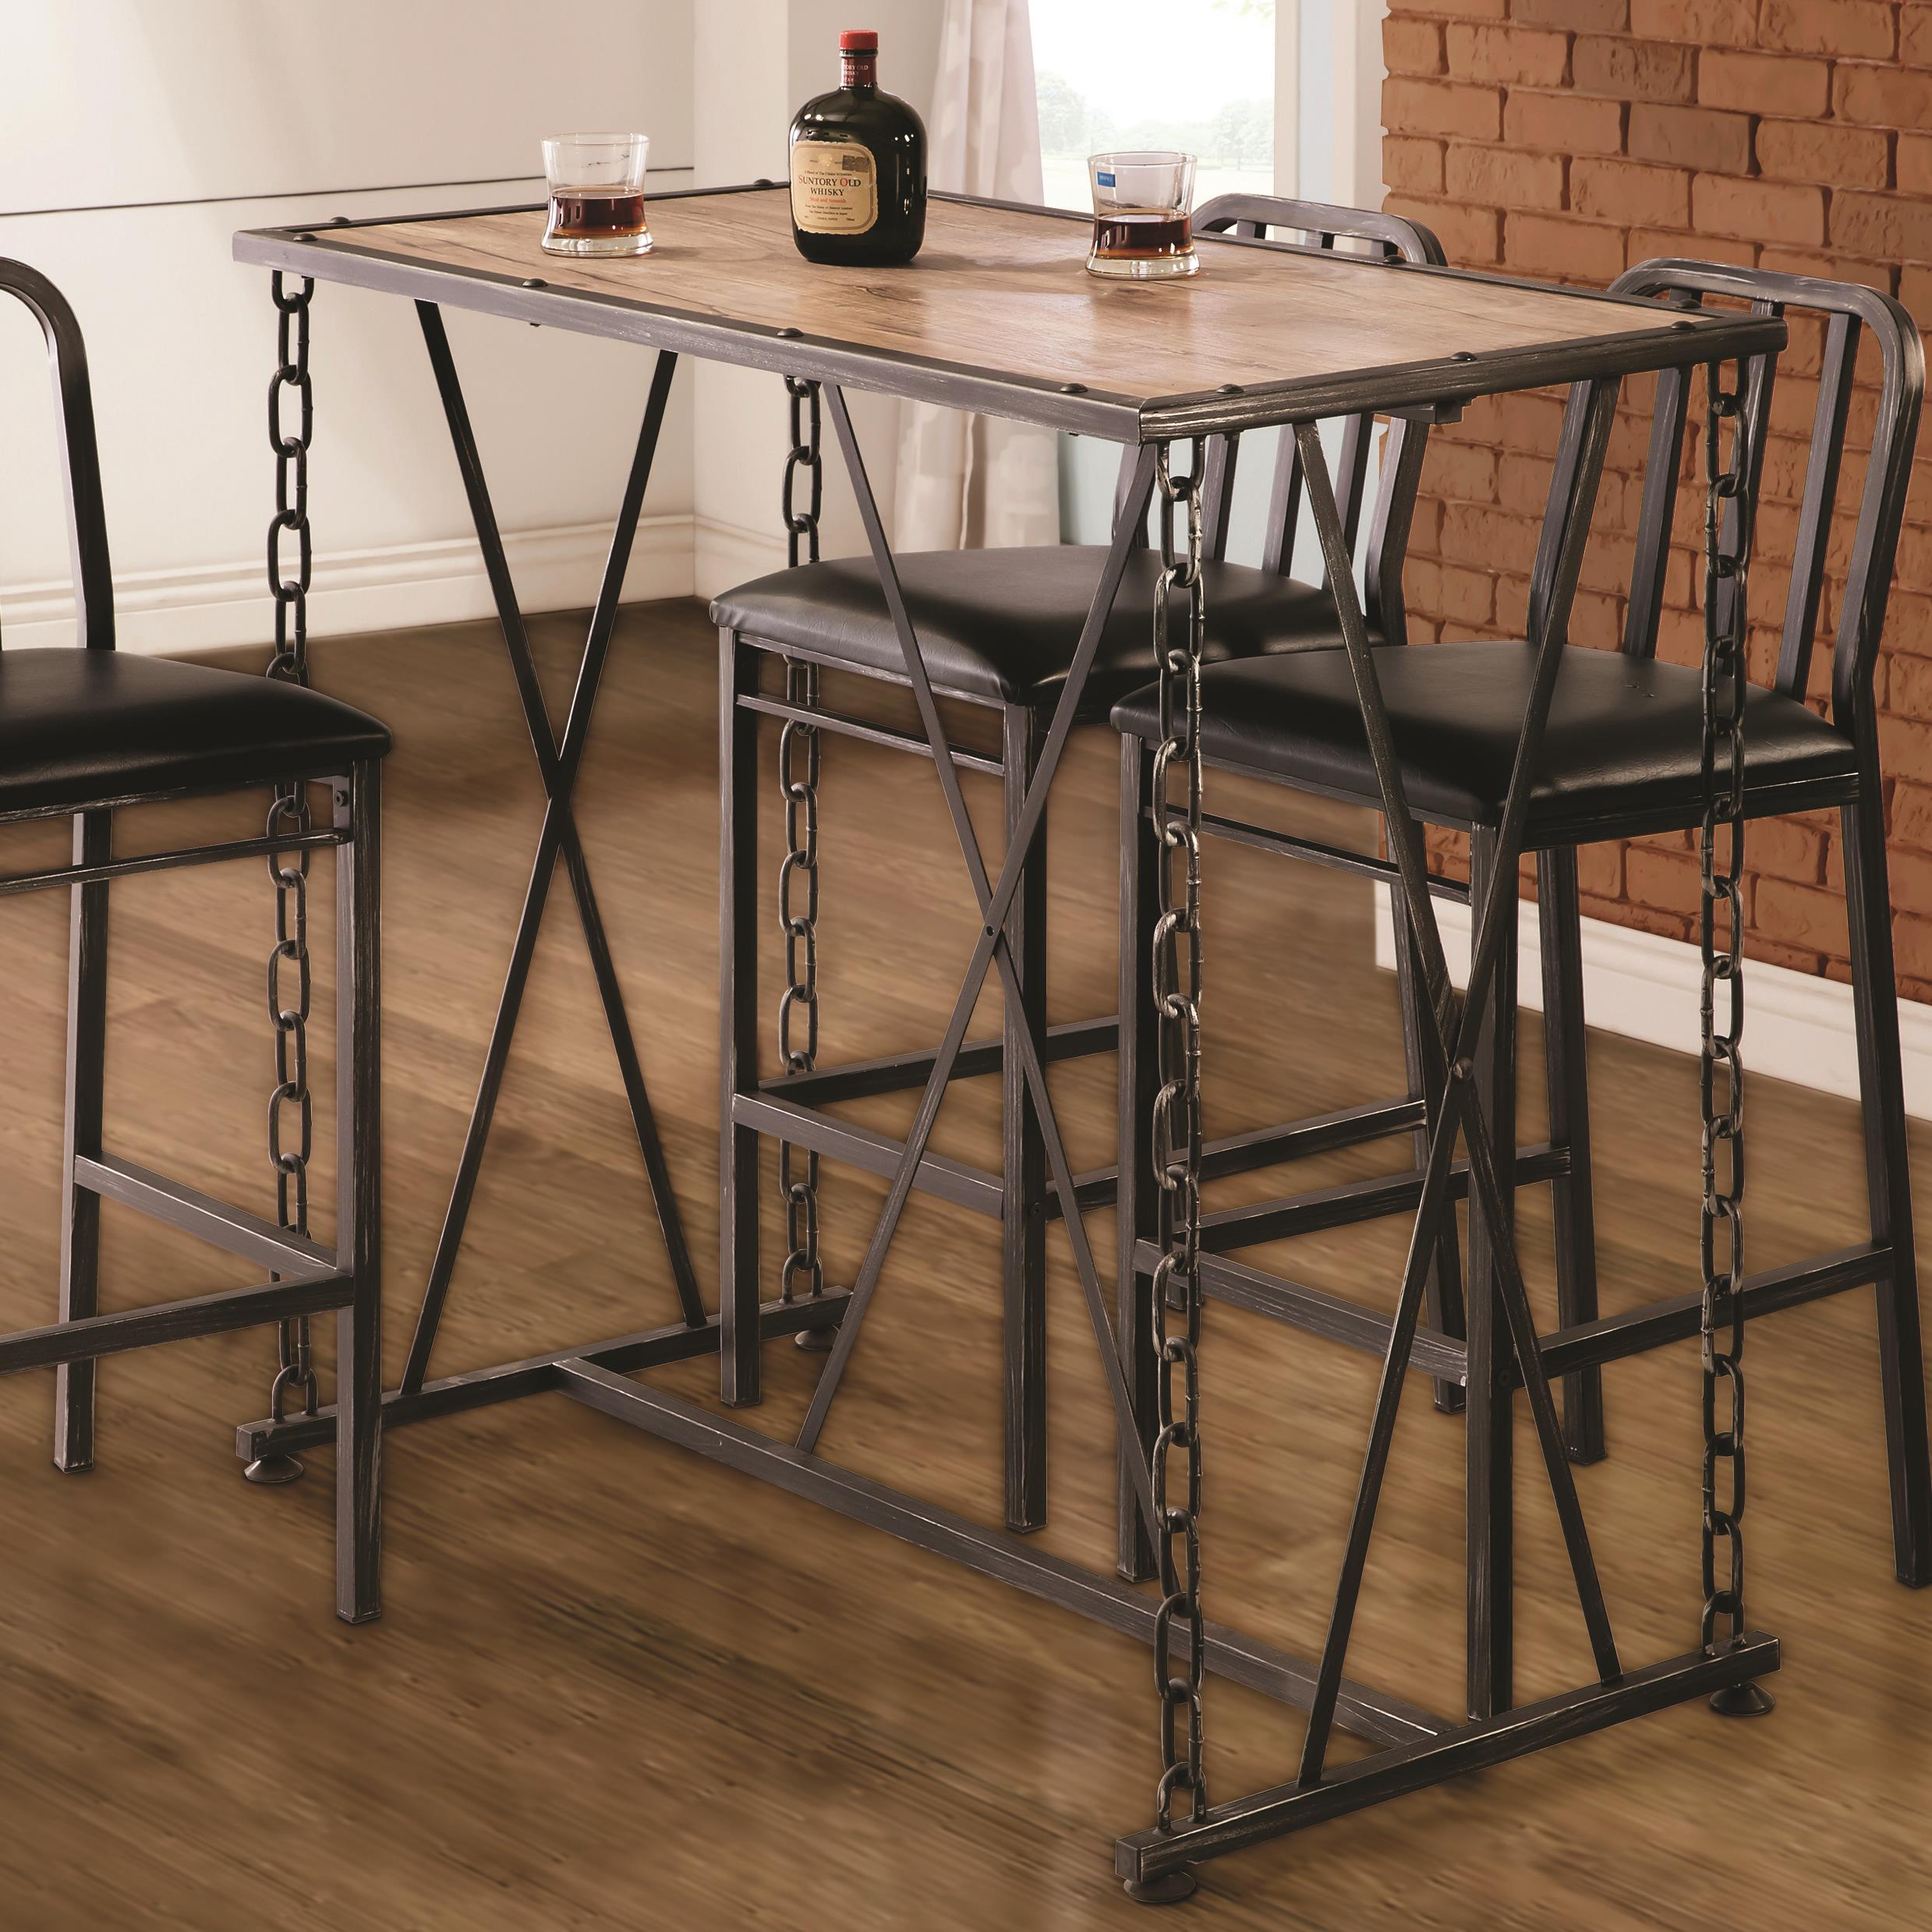 reclining sofa reviews 2017 furniture row mart warranty 10069 rustic industrial chain link bar table   quality ...